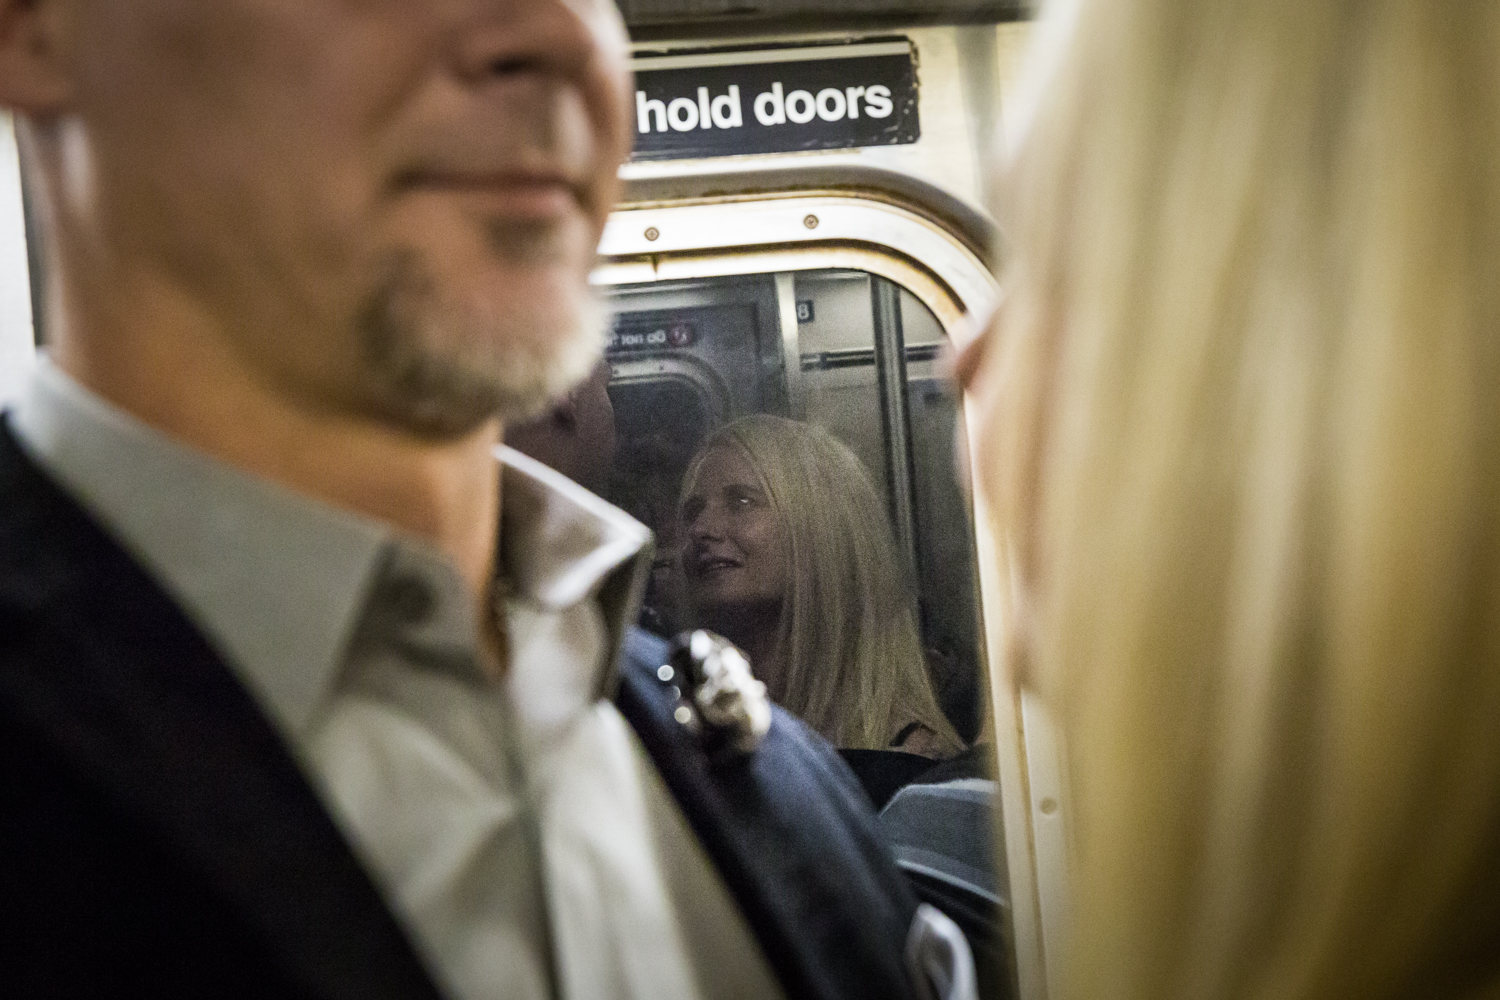 Reflection of woman in window of subway car